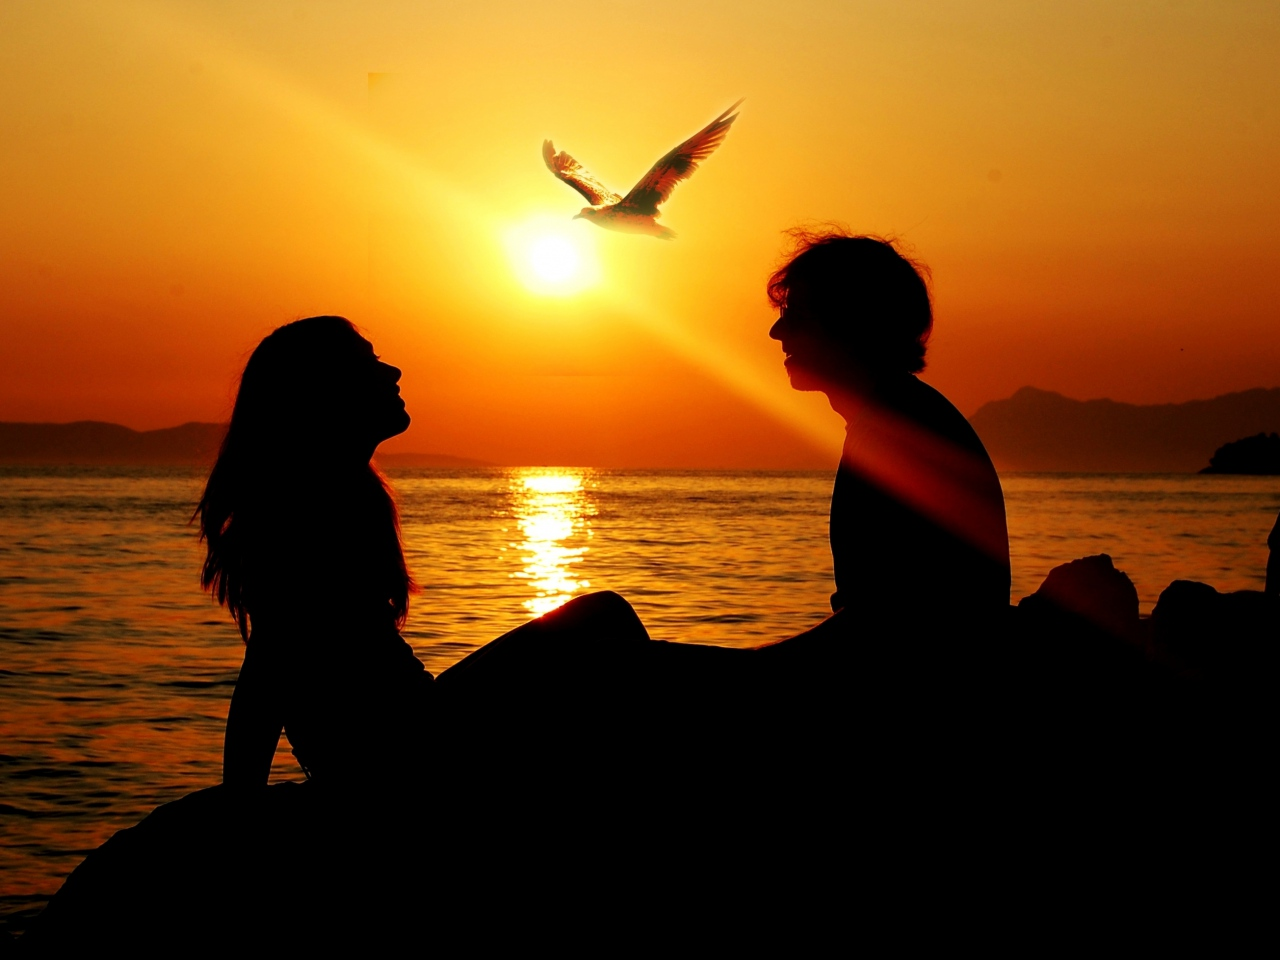 girl-sunset-summer-ray-love-sea-man-bird-freedom-silhouette-sun-sea-gull.jpg